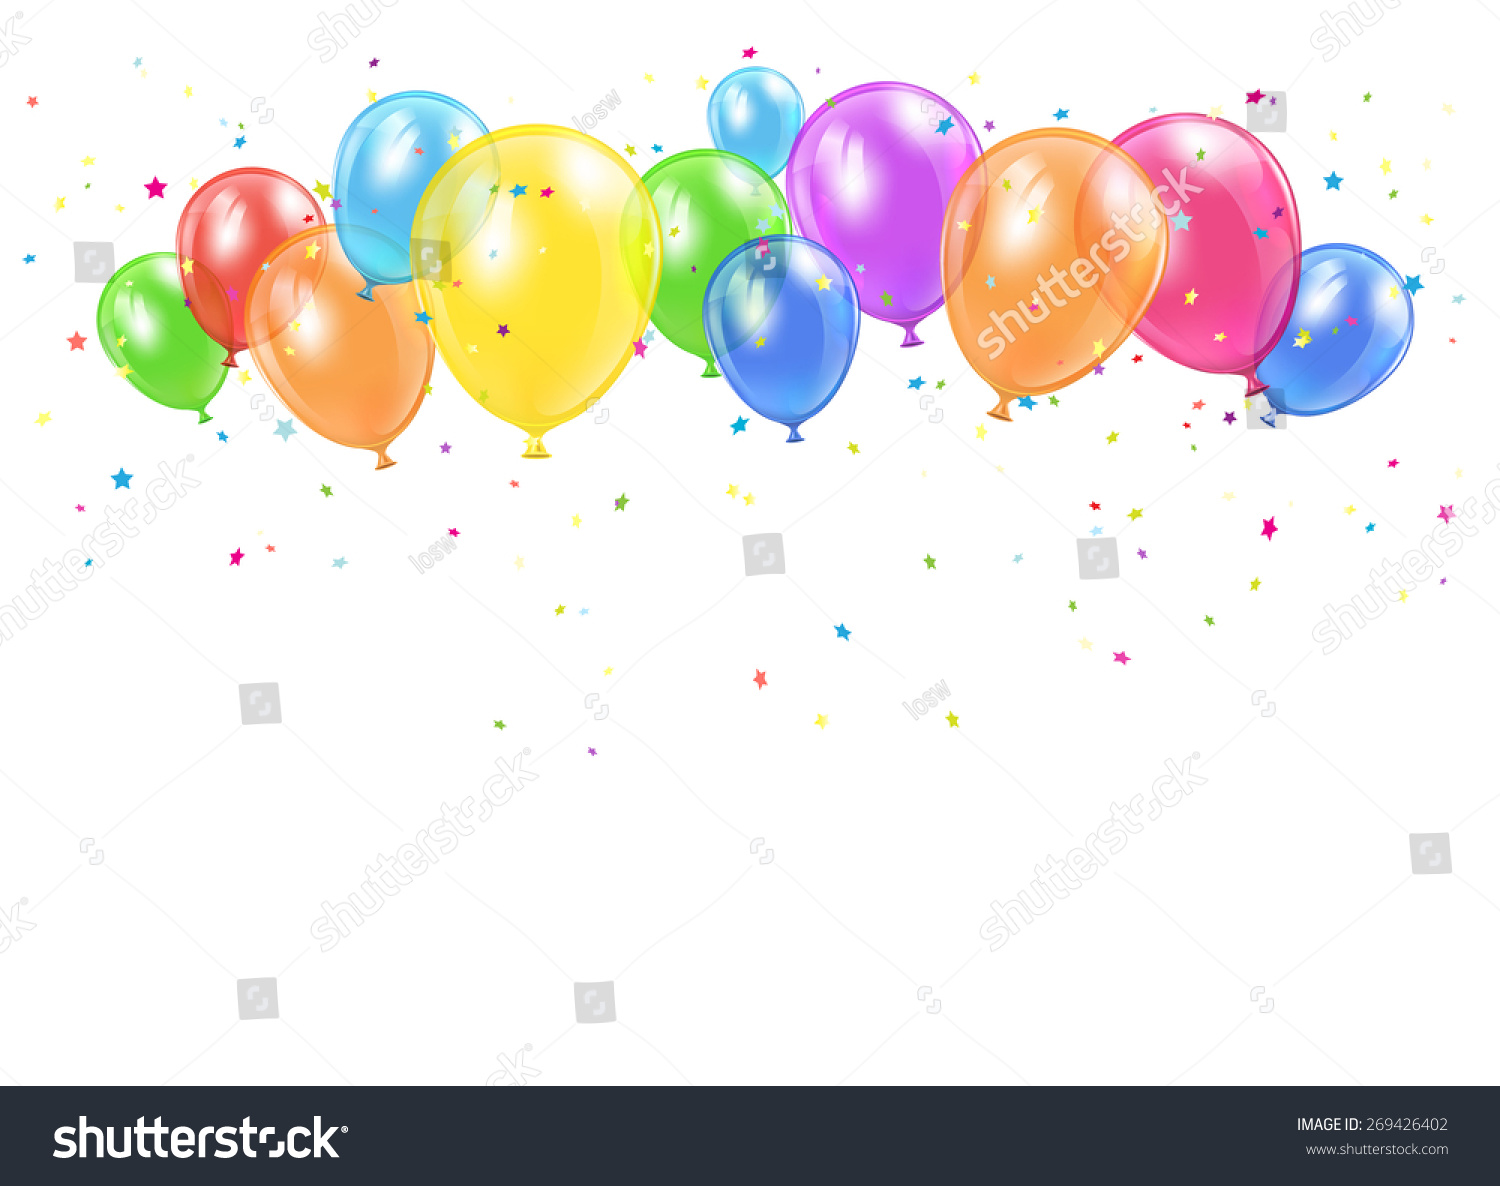 Colorful inflatable balloons background abstract festive backdrop - Holiday Balloons Confetti Flying On White Stock